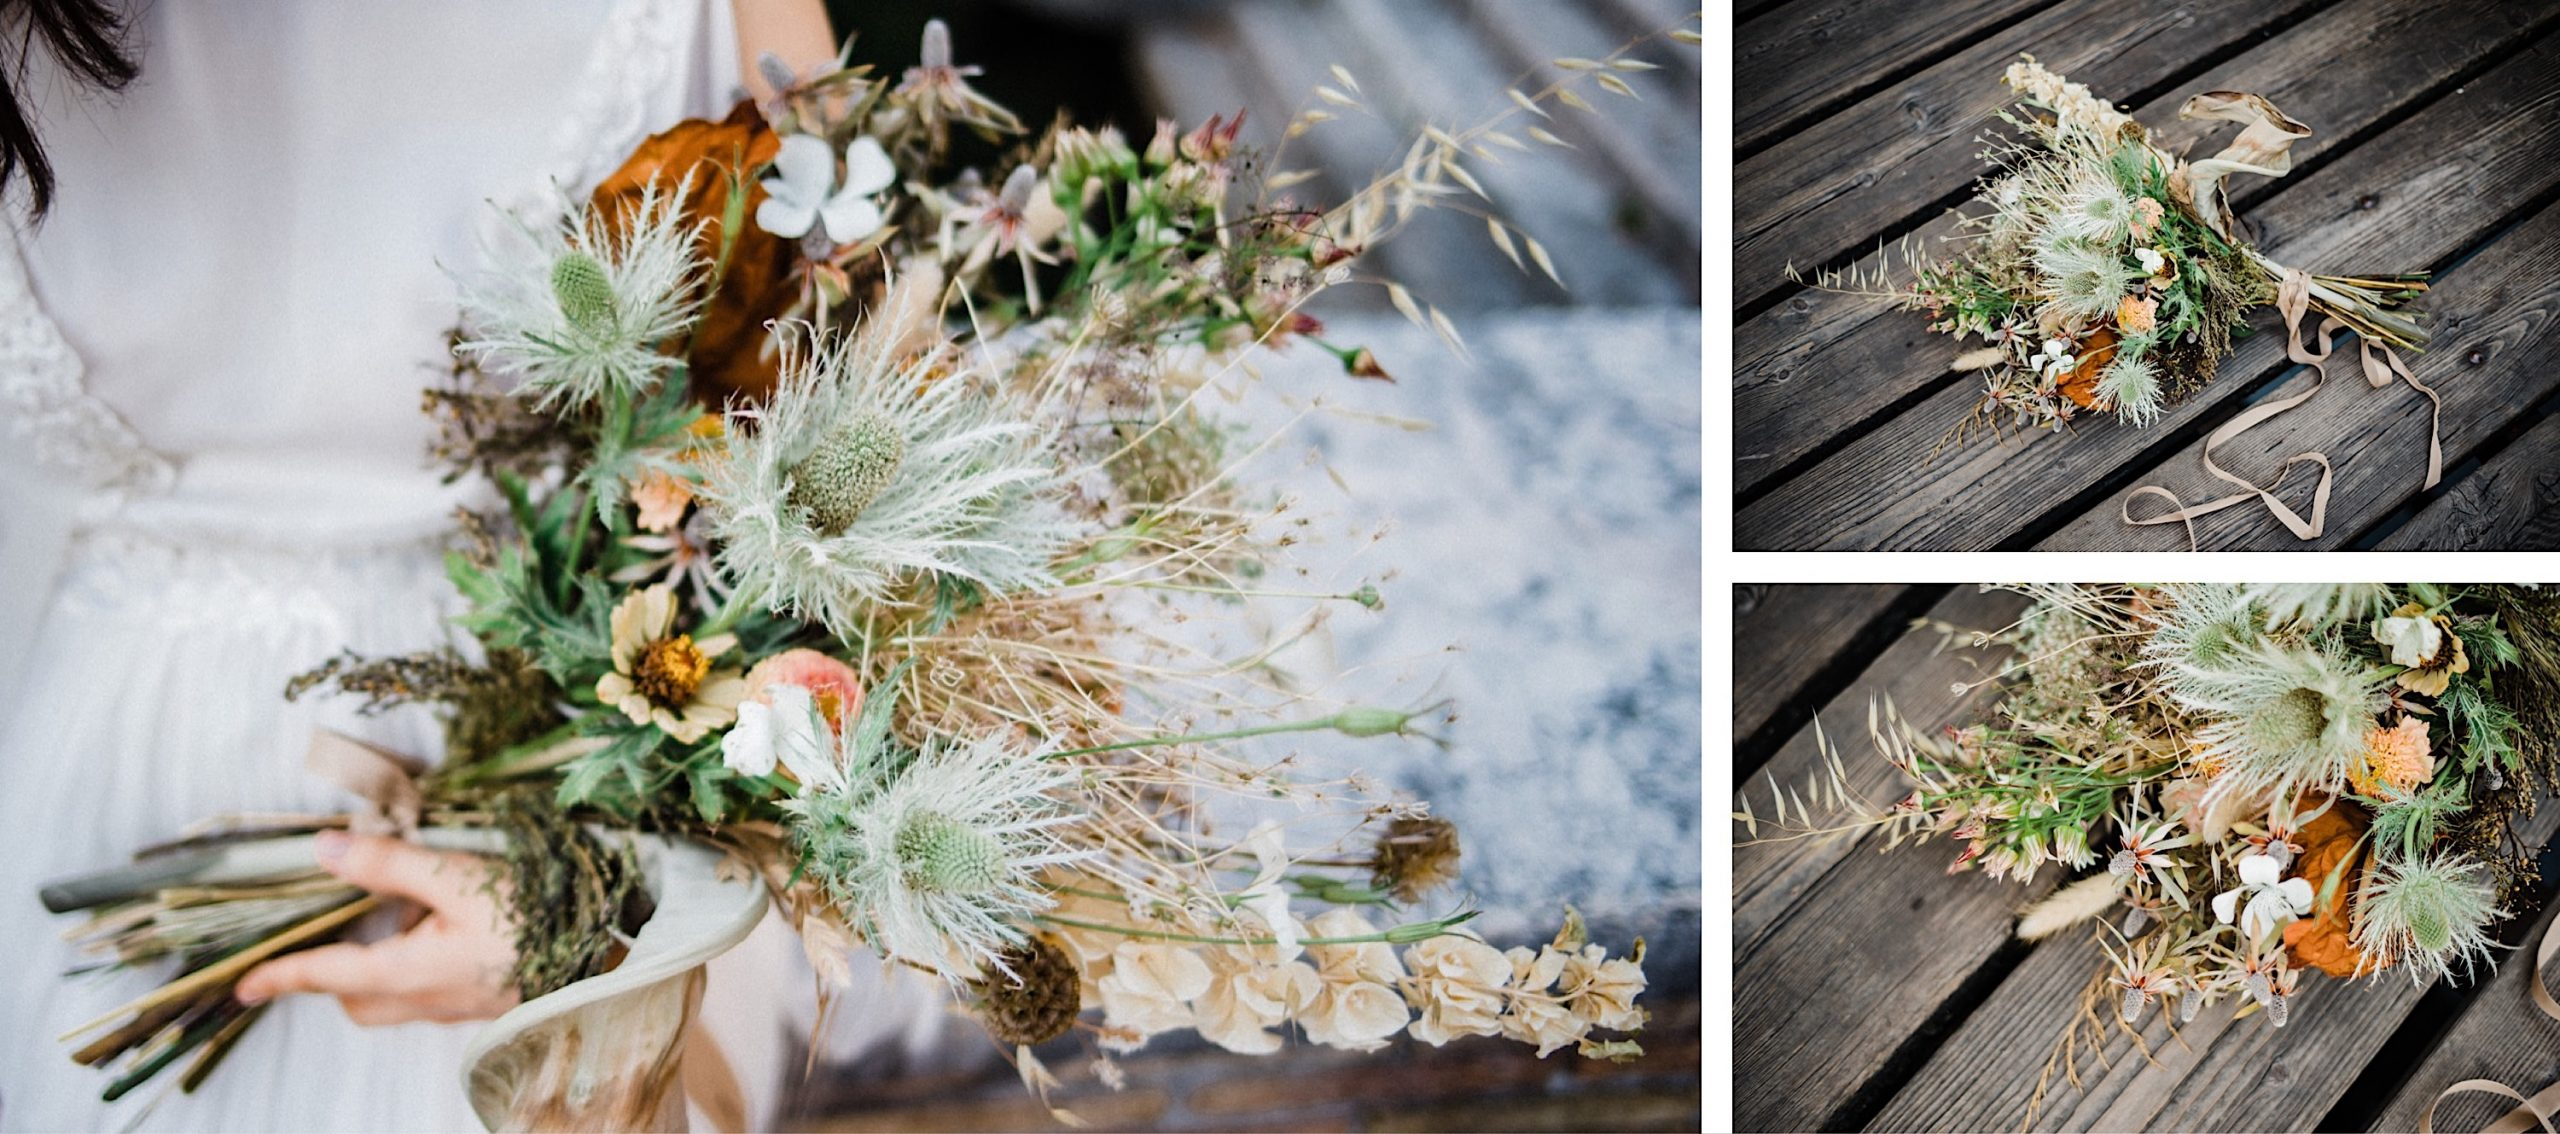 Three images of a beautiful, romantic bridal bouquet made by Signora Radici using dried and fresh flowers.